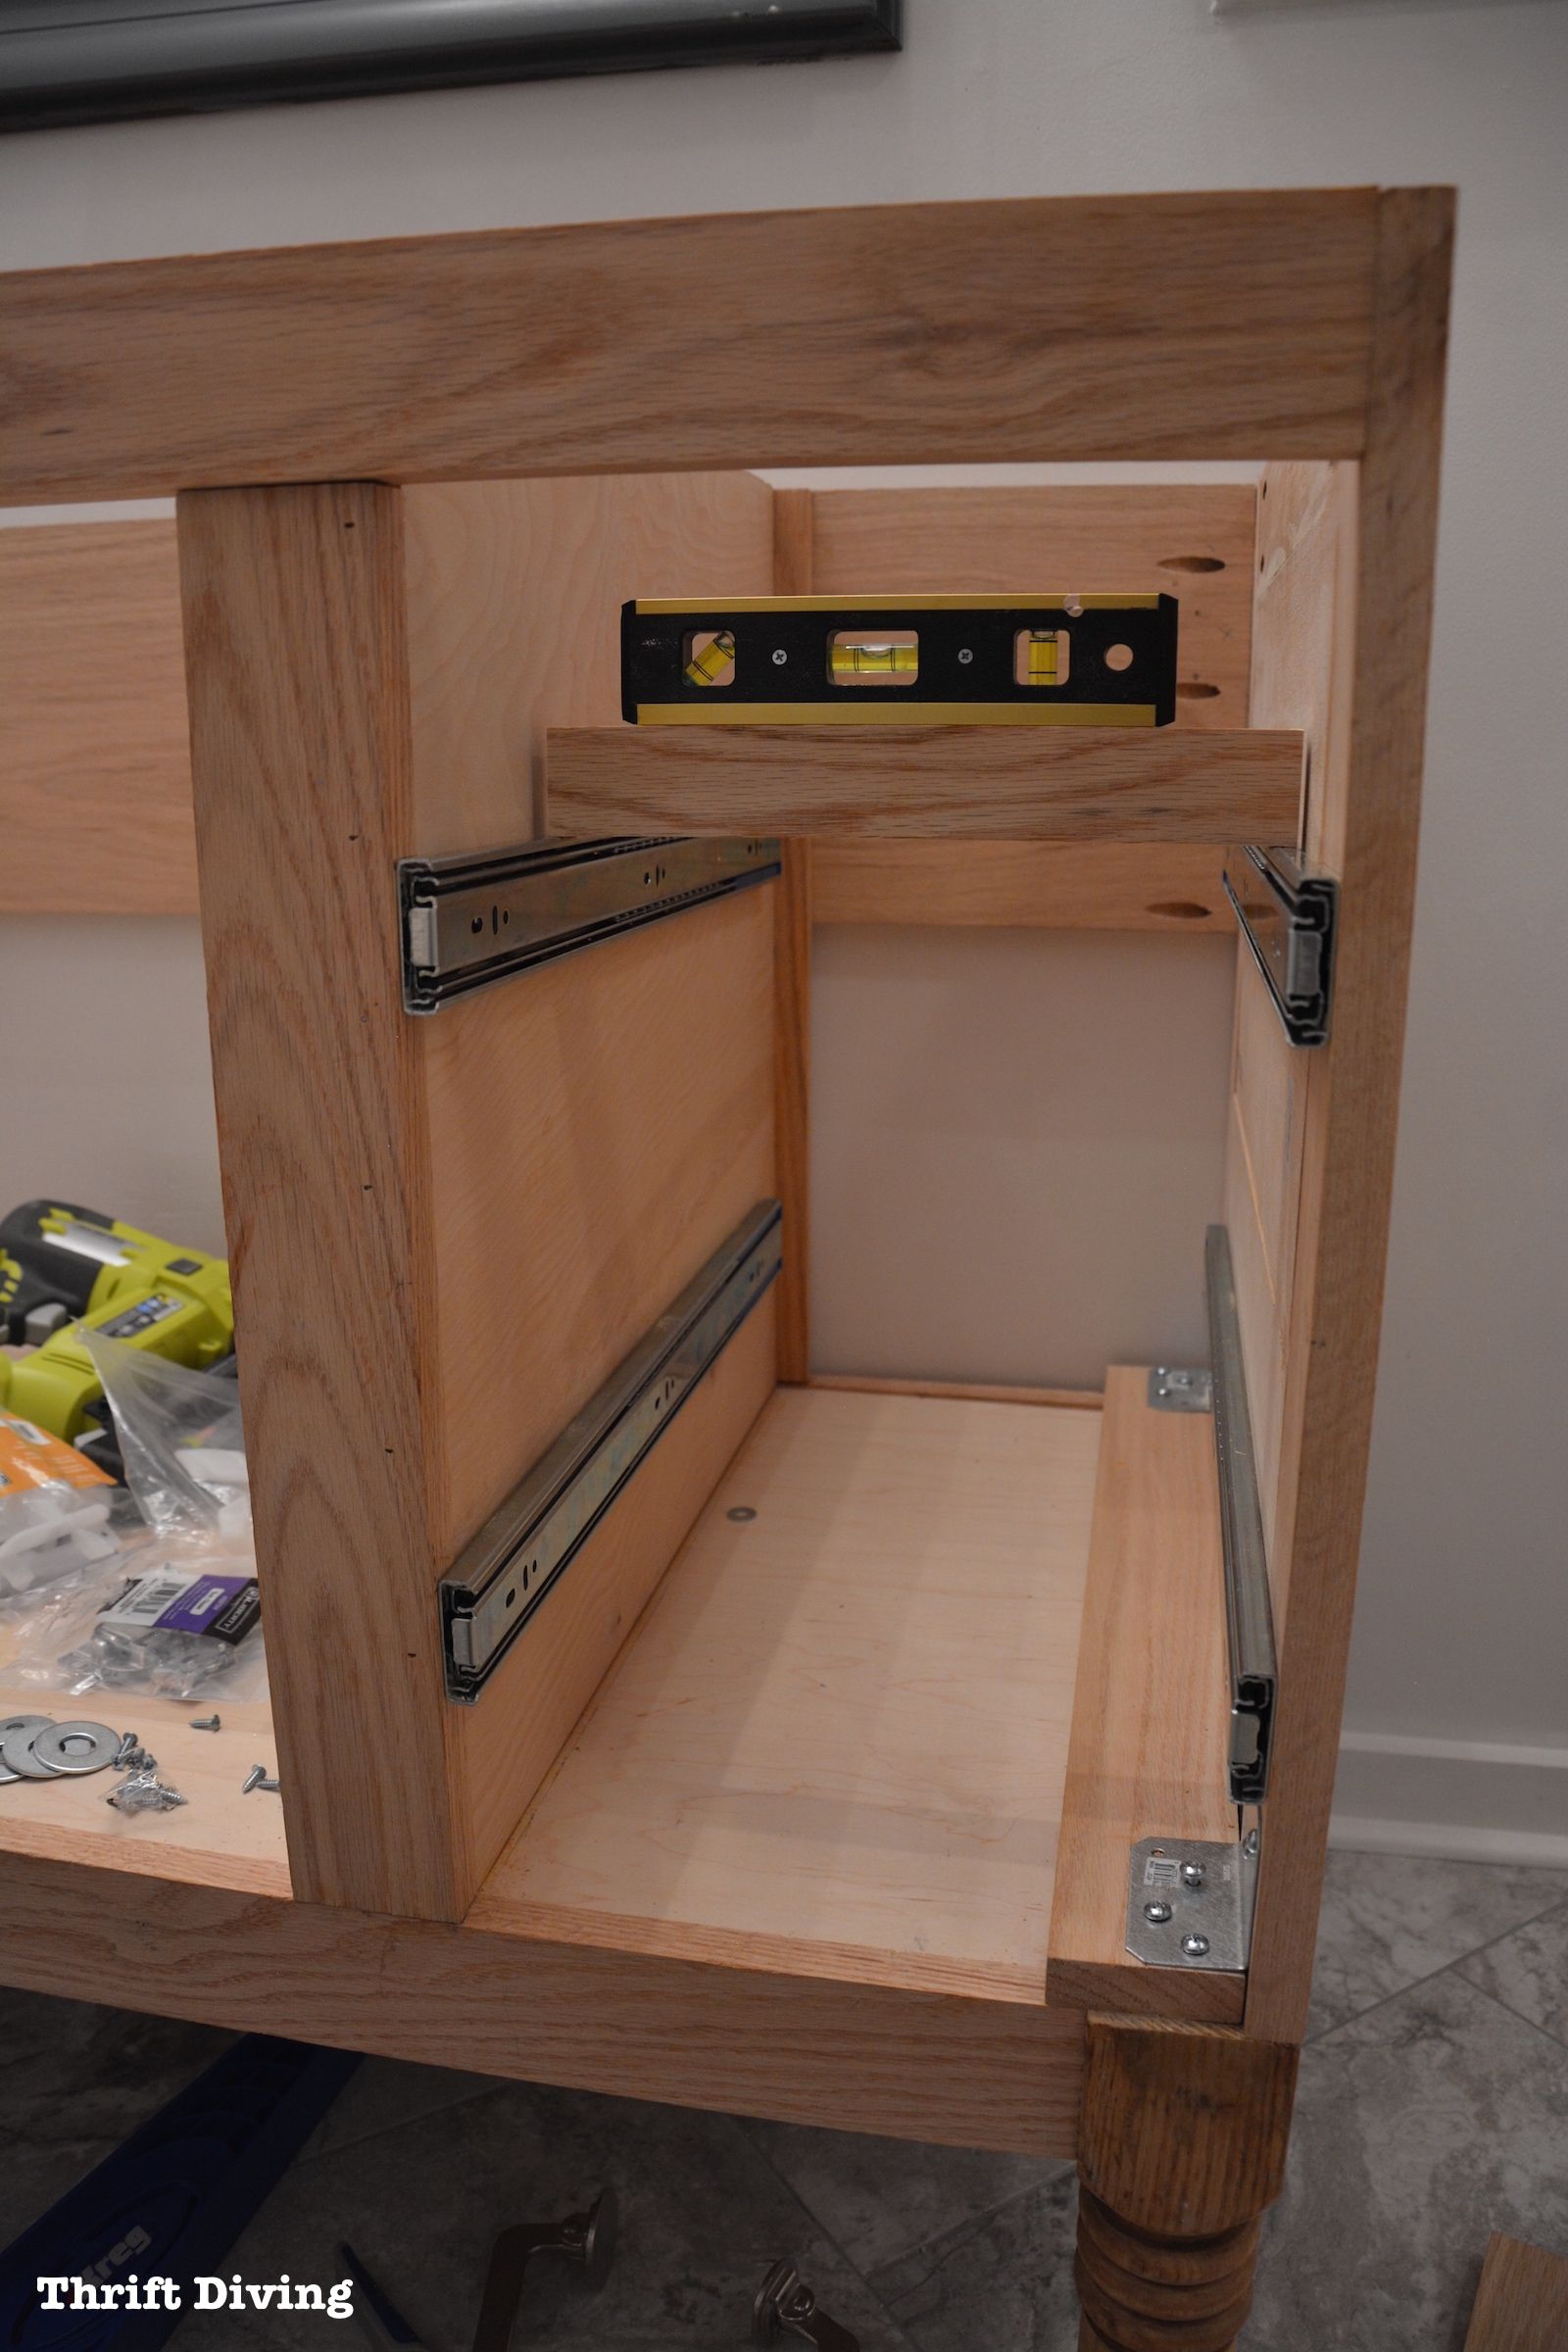 How To Build A Cabinet With Drawers And Doors : build, cabinet, drawers, doors, Ideas, House